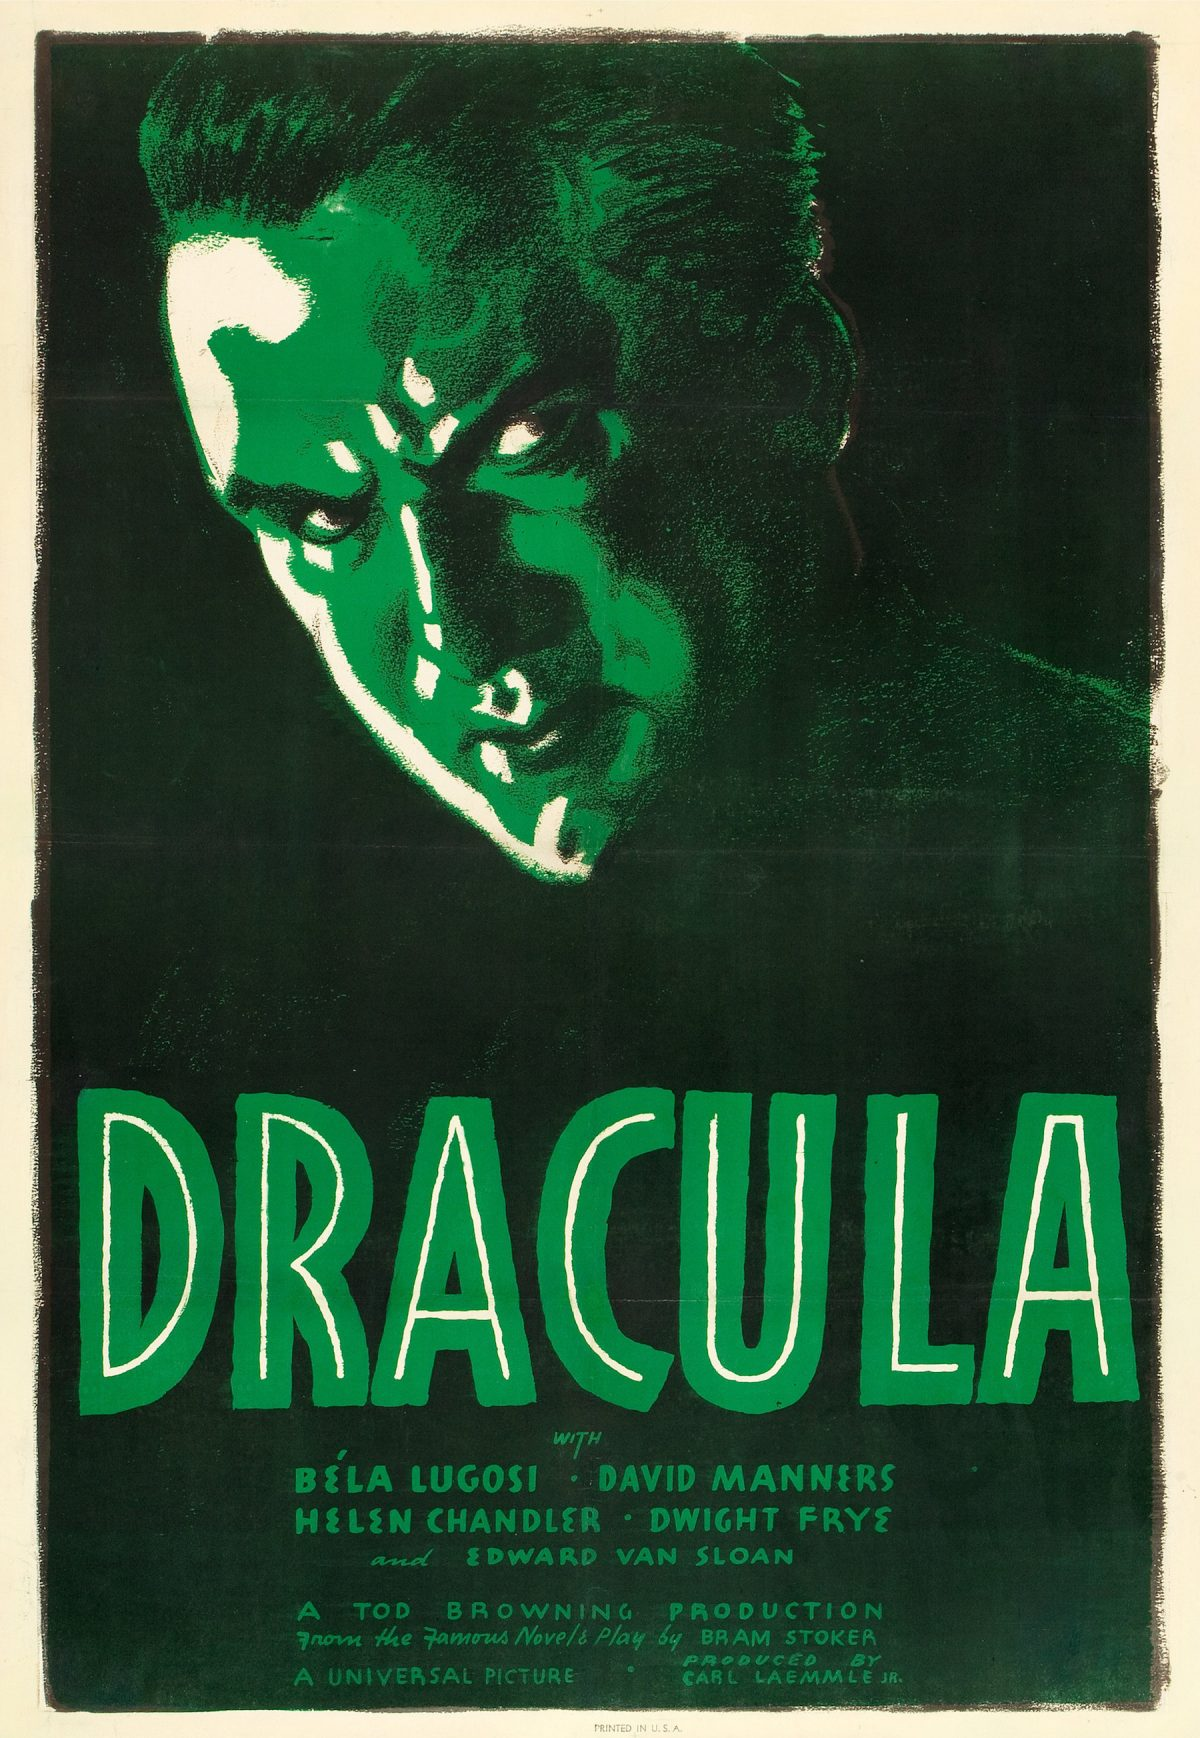 Dracula, Bela Lugosi, film poster, horror movie, 1931